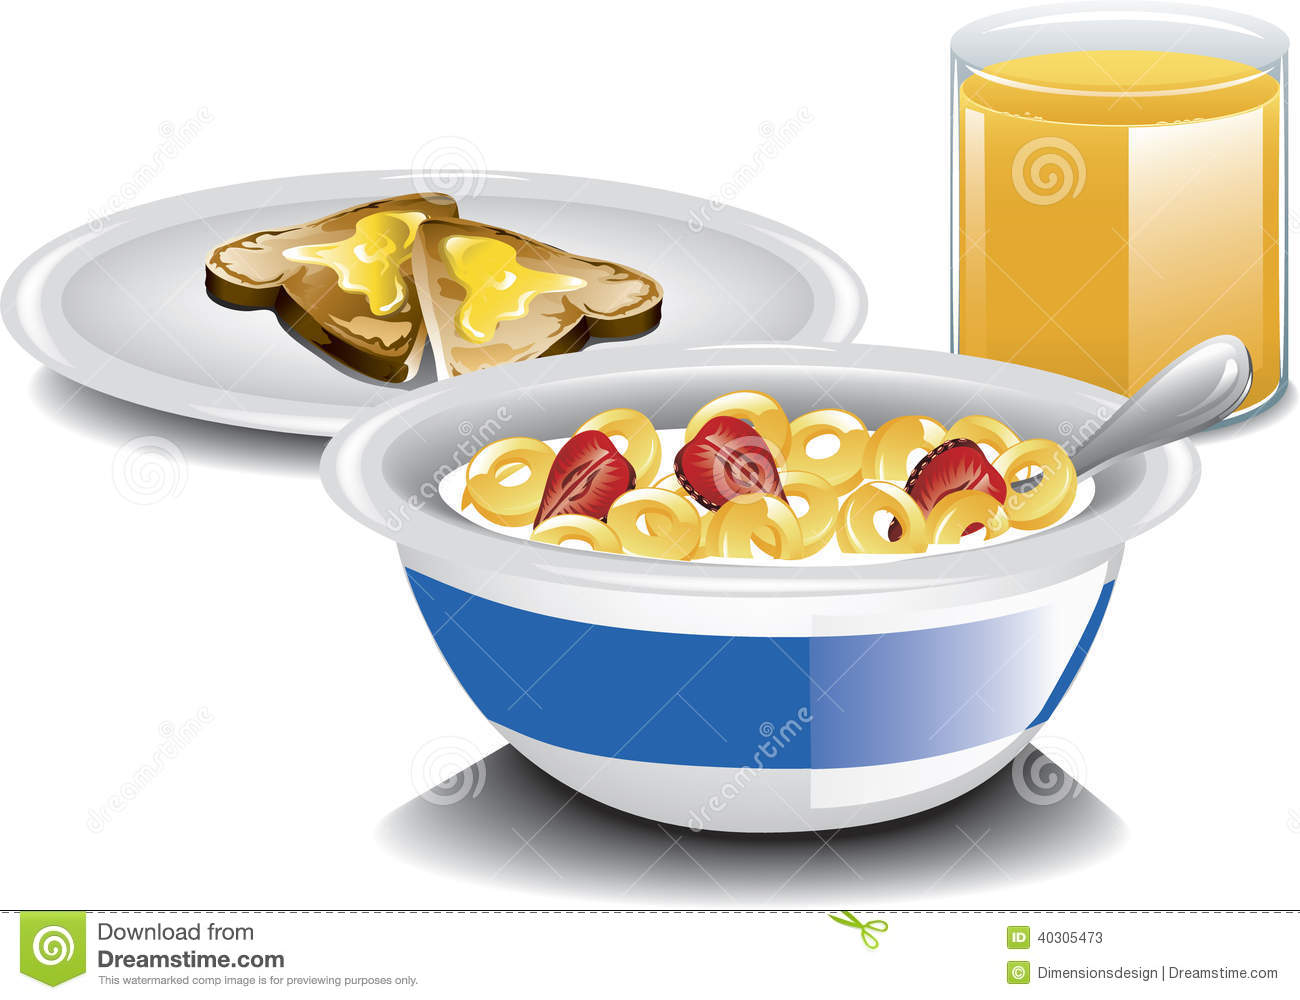 ... complete breakfast with cereal, toast and a glass of orange juice